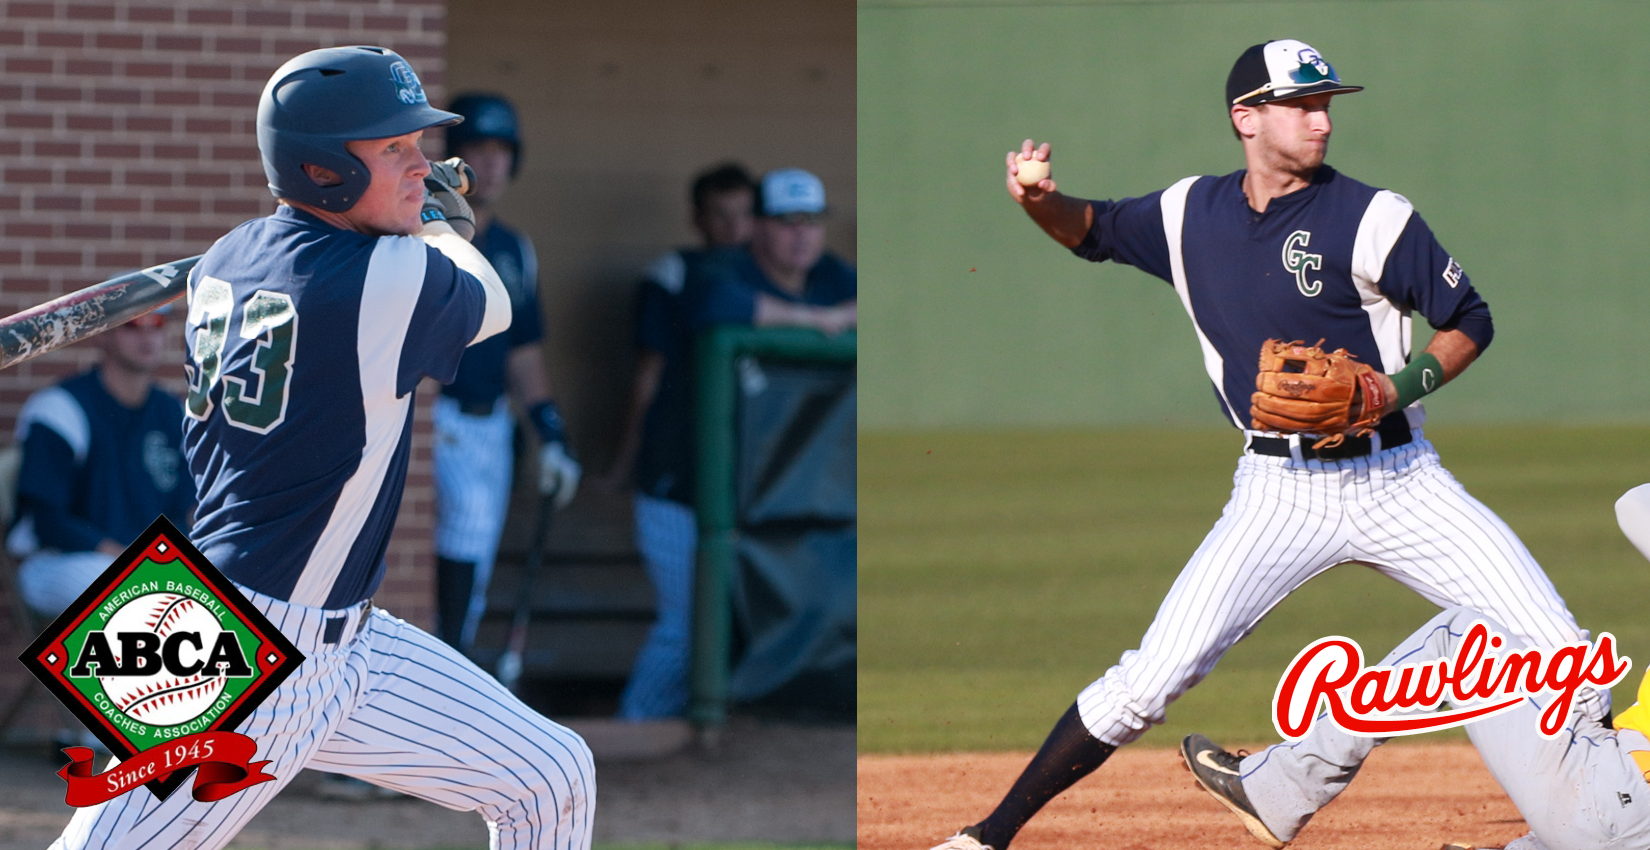 Cook Sweeps Player of the Year, GC Baseball Puts Two on Rawlings All-Region Team